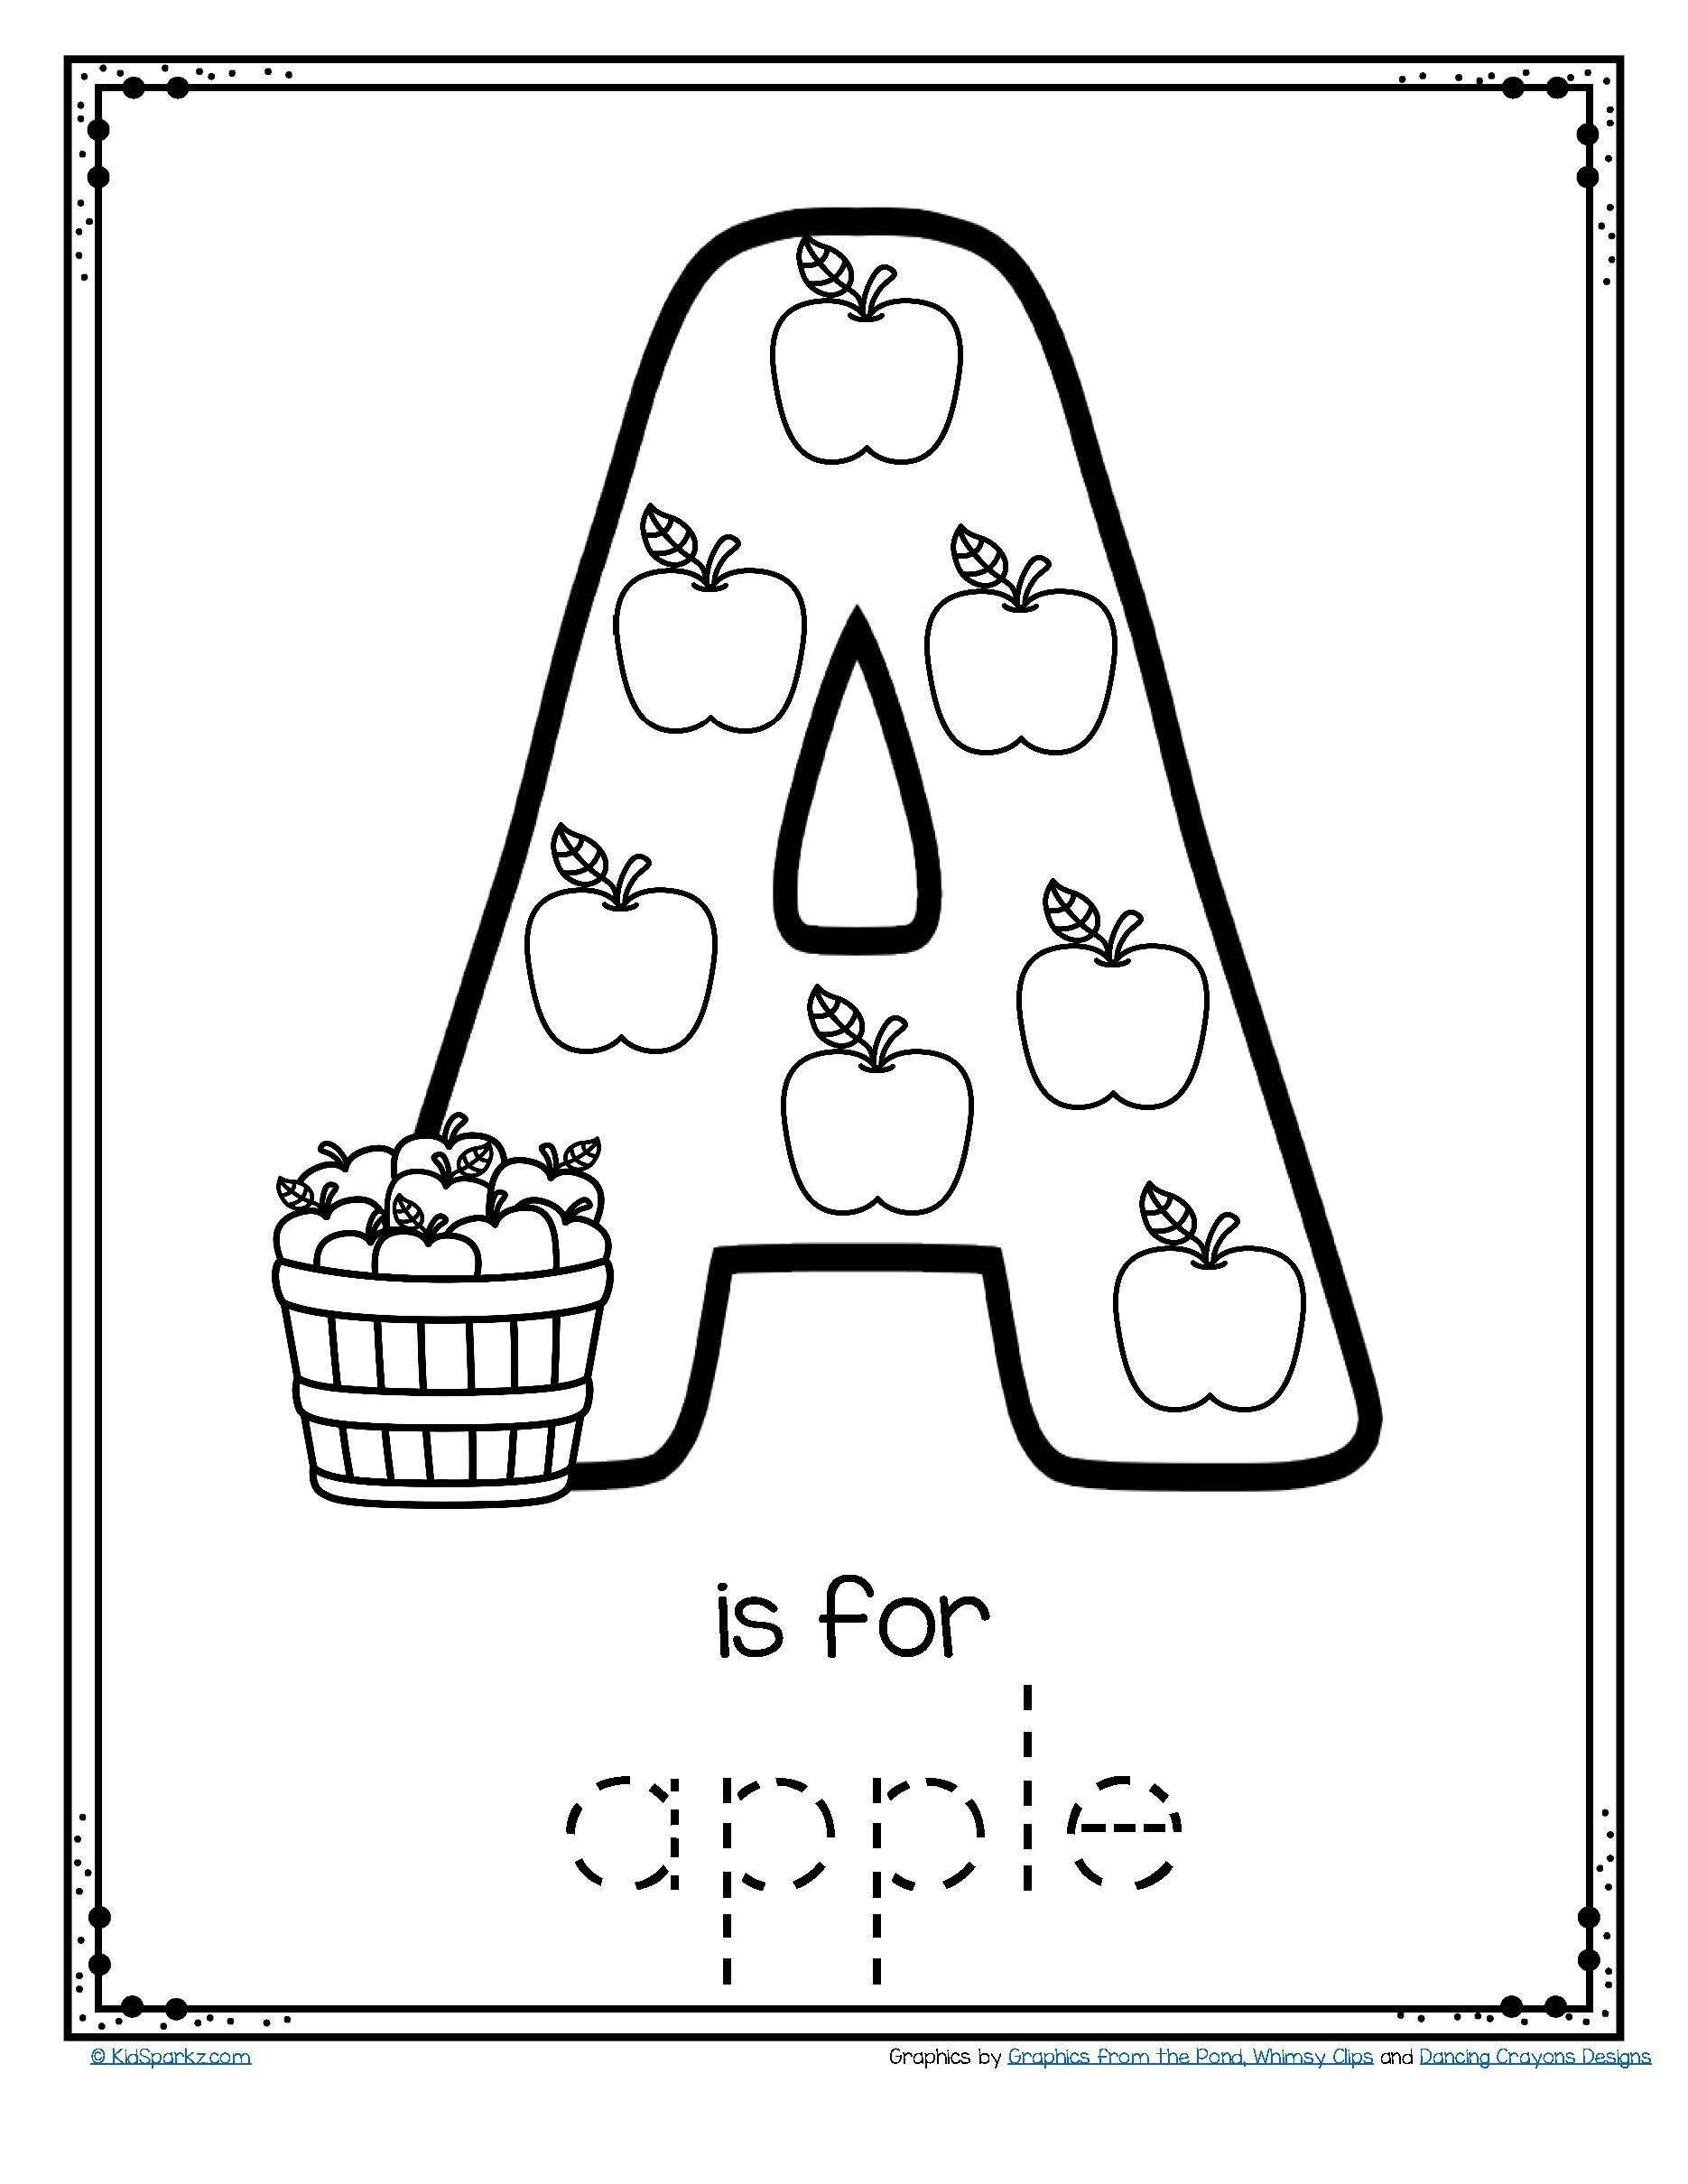 Apple Worksheets Preschool Letter A is for Apple Trace and Color Printable Free